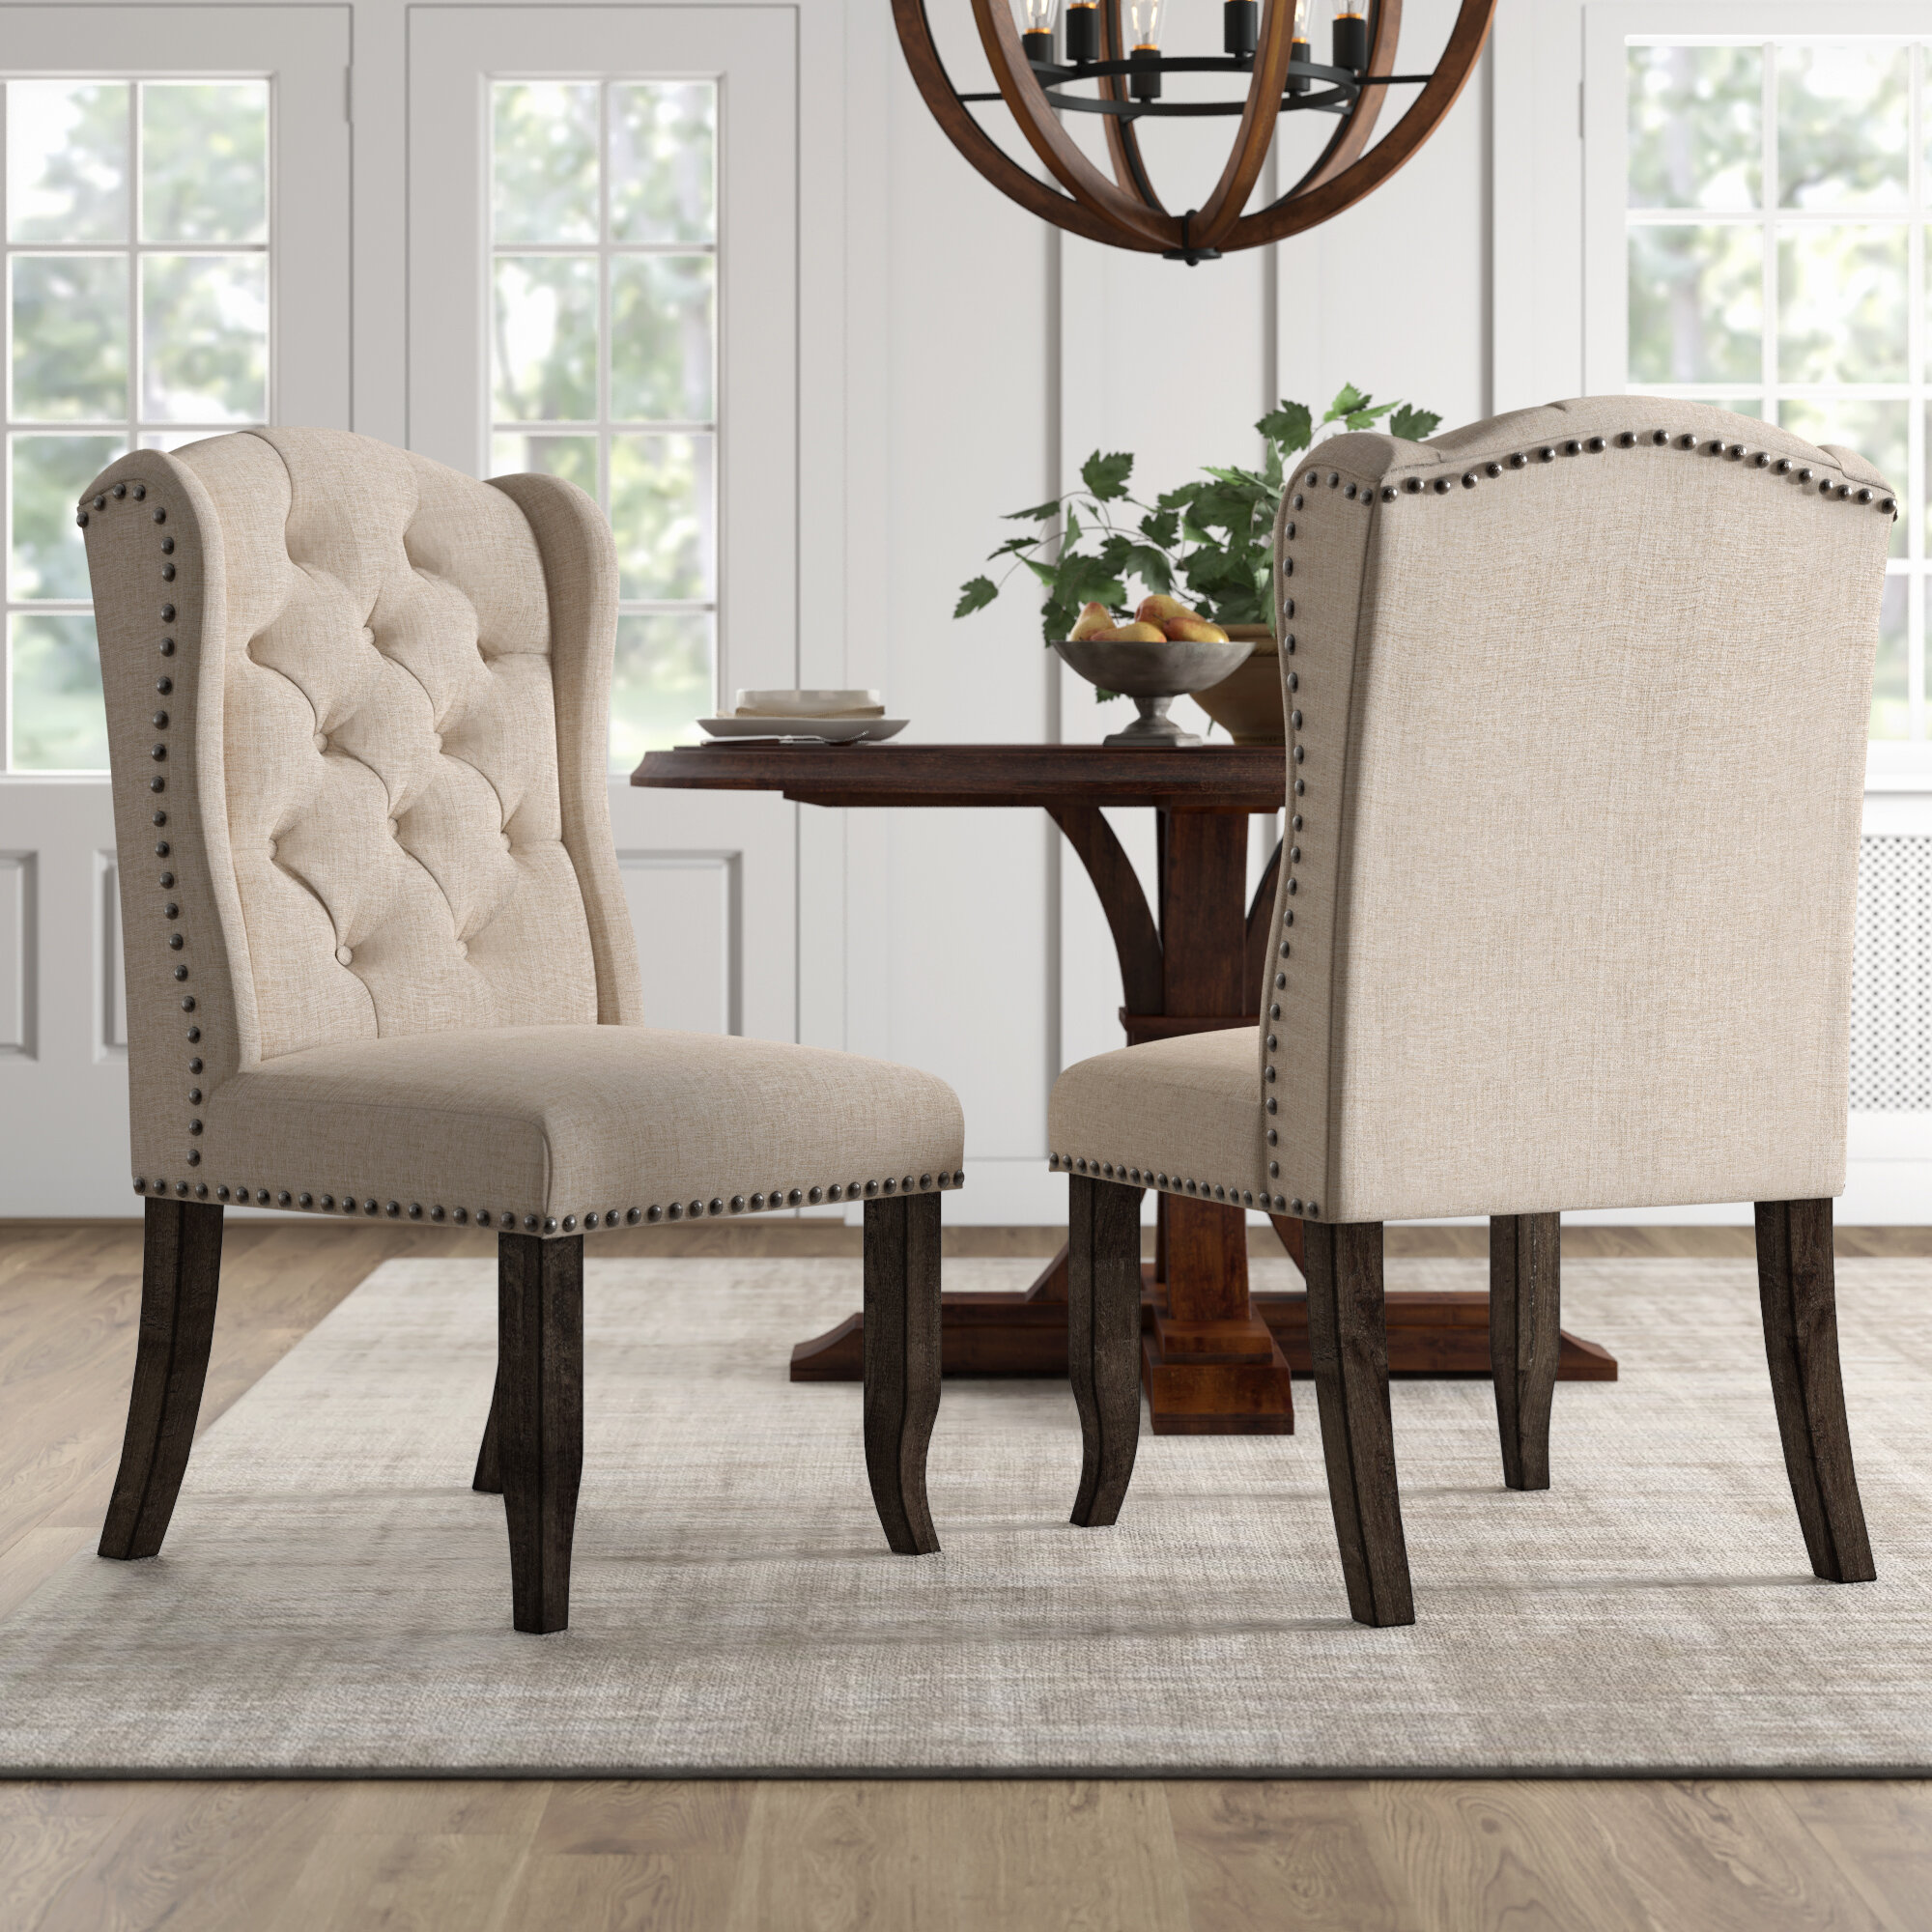 Amazing Calila Upholstered Dining Chair Machost Co Dining Chair Design Ideas Machostcouk